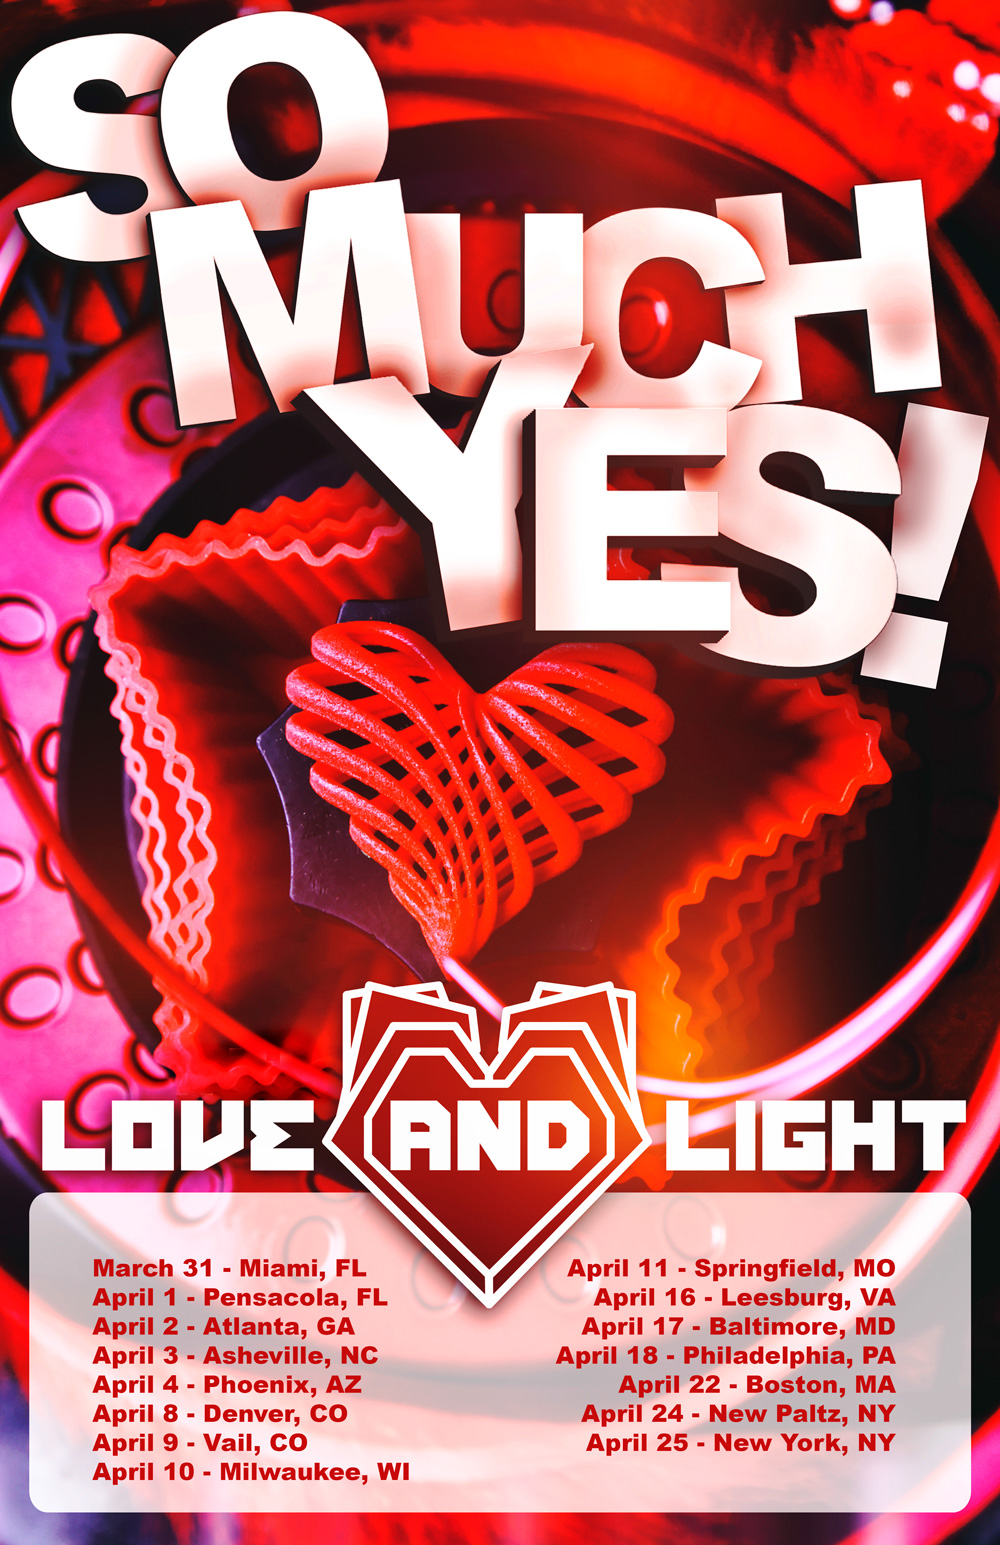 Love and Light - So Much Yes tour